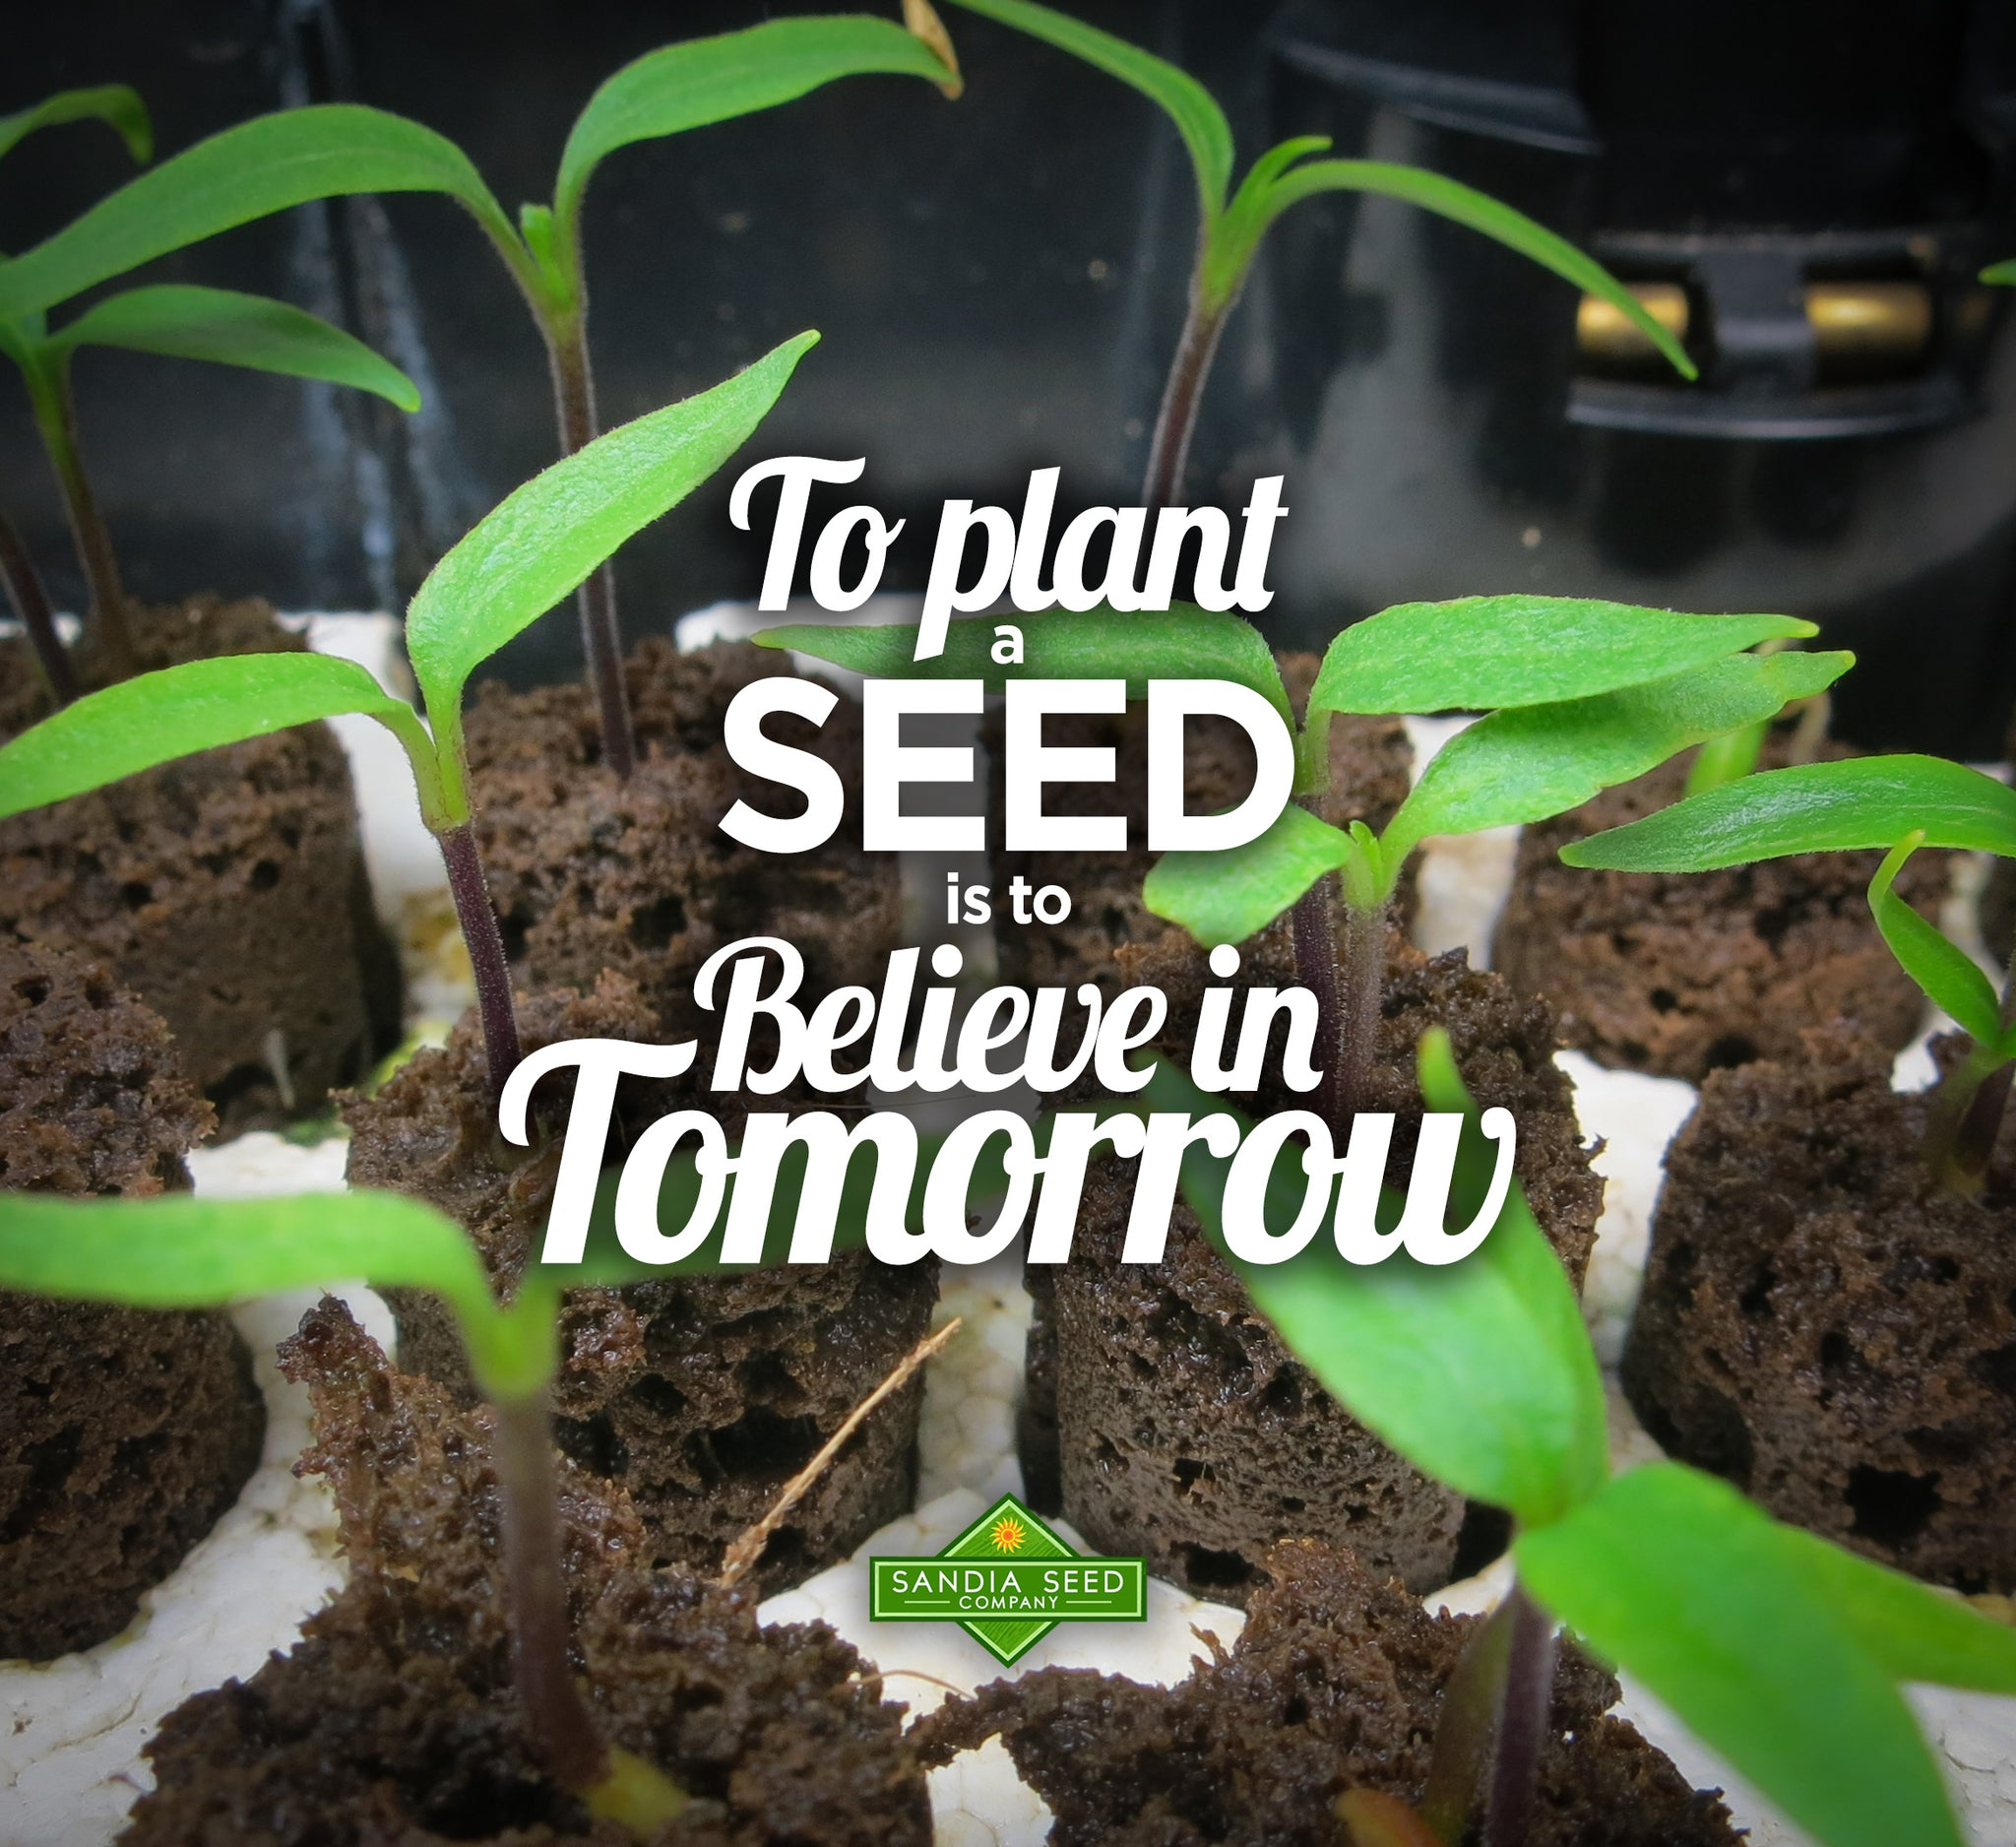 Garden Quotes: To plant a seed is to believe in tomorrow!